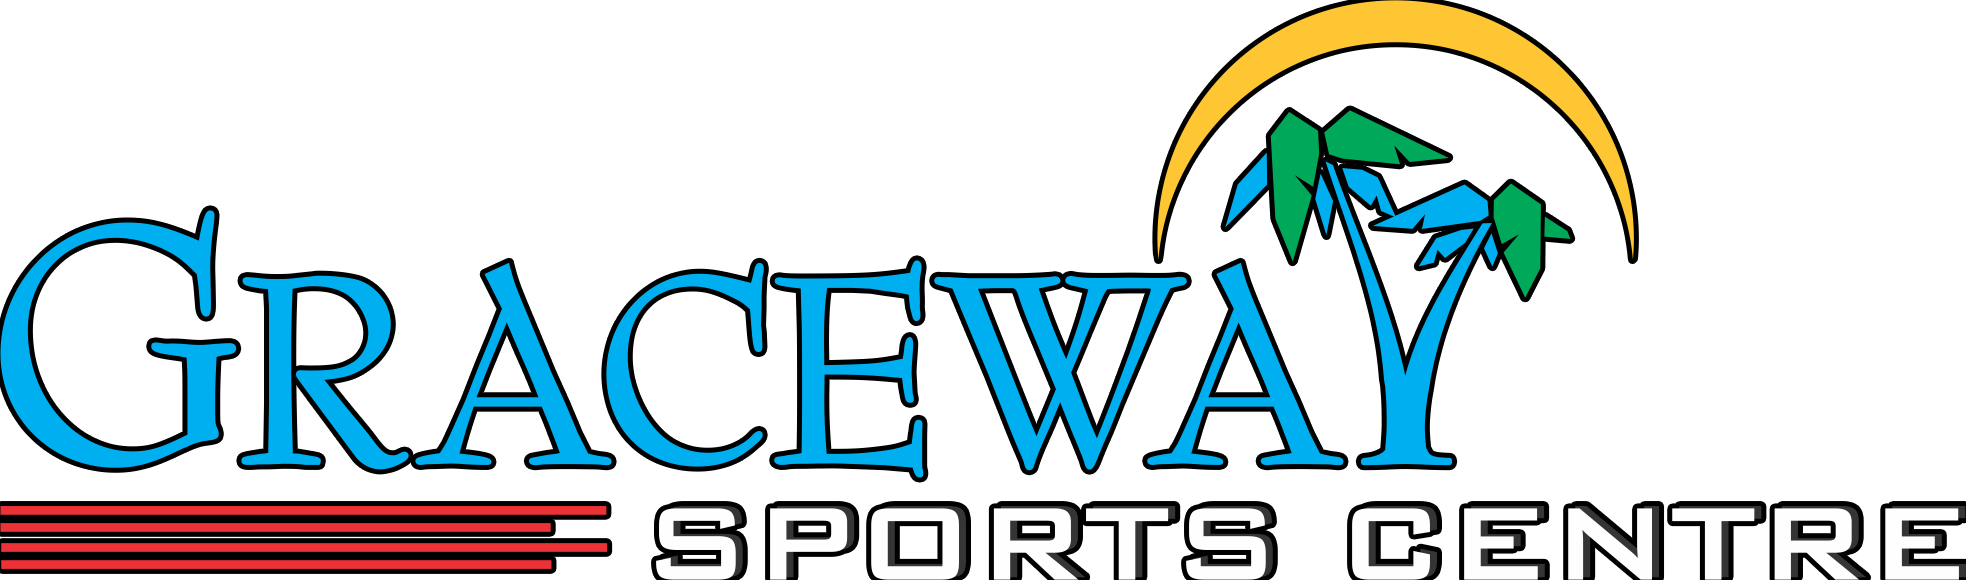 zlogo- Graeway Sports Center.png